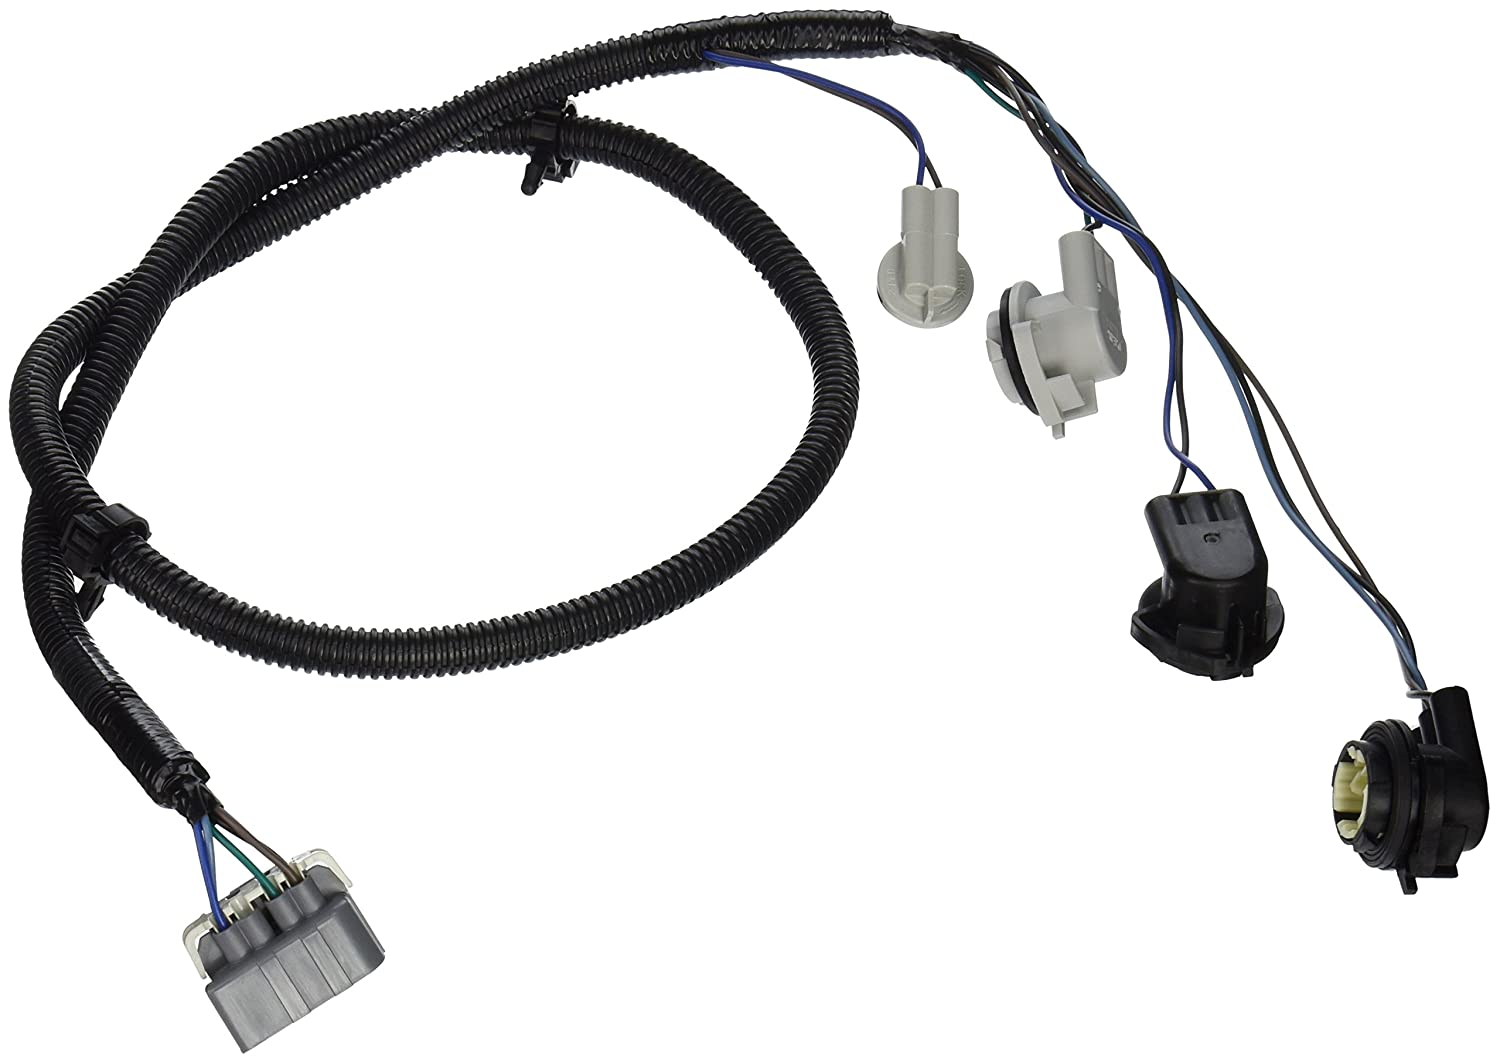 81sfkEXtmvL._SL1500_ amazon com genuine gm 16531401 tail lamp wiring harness automotive GM Turn Signal Wiring at readyjetset.co